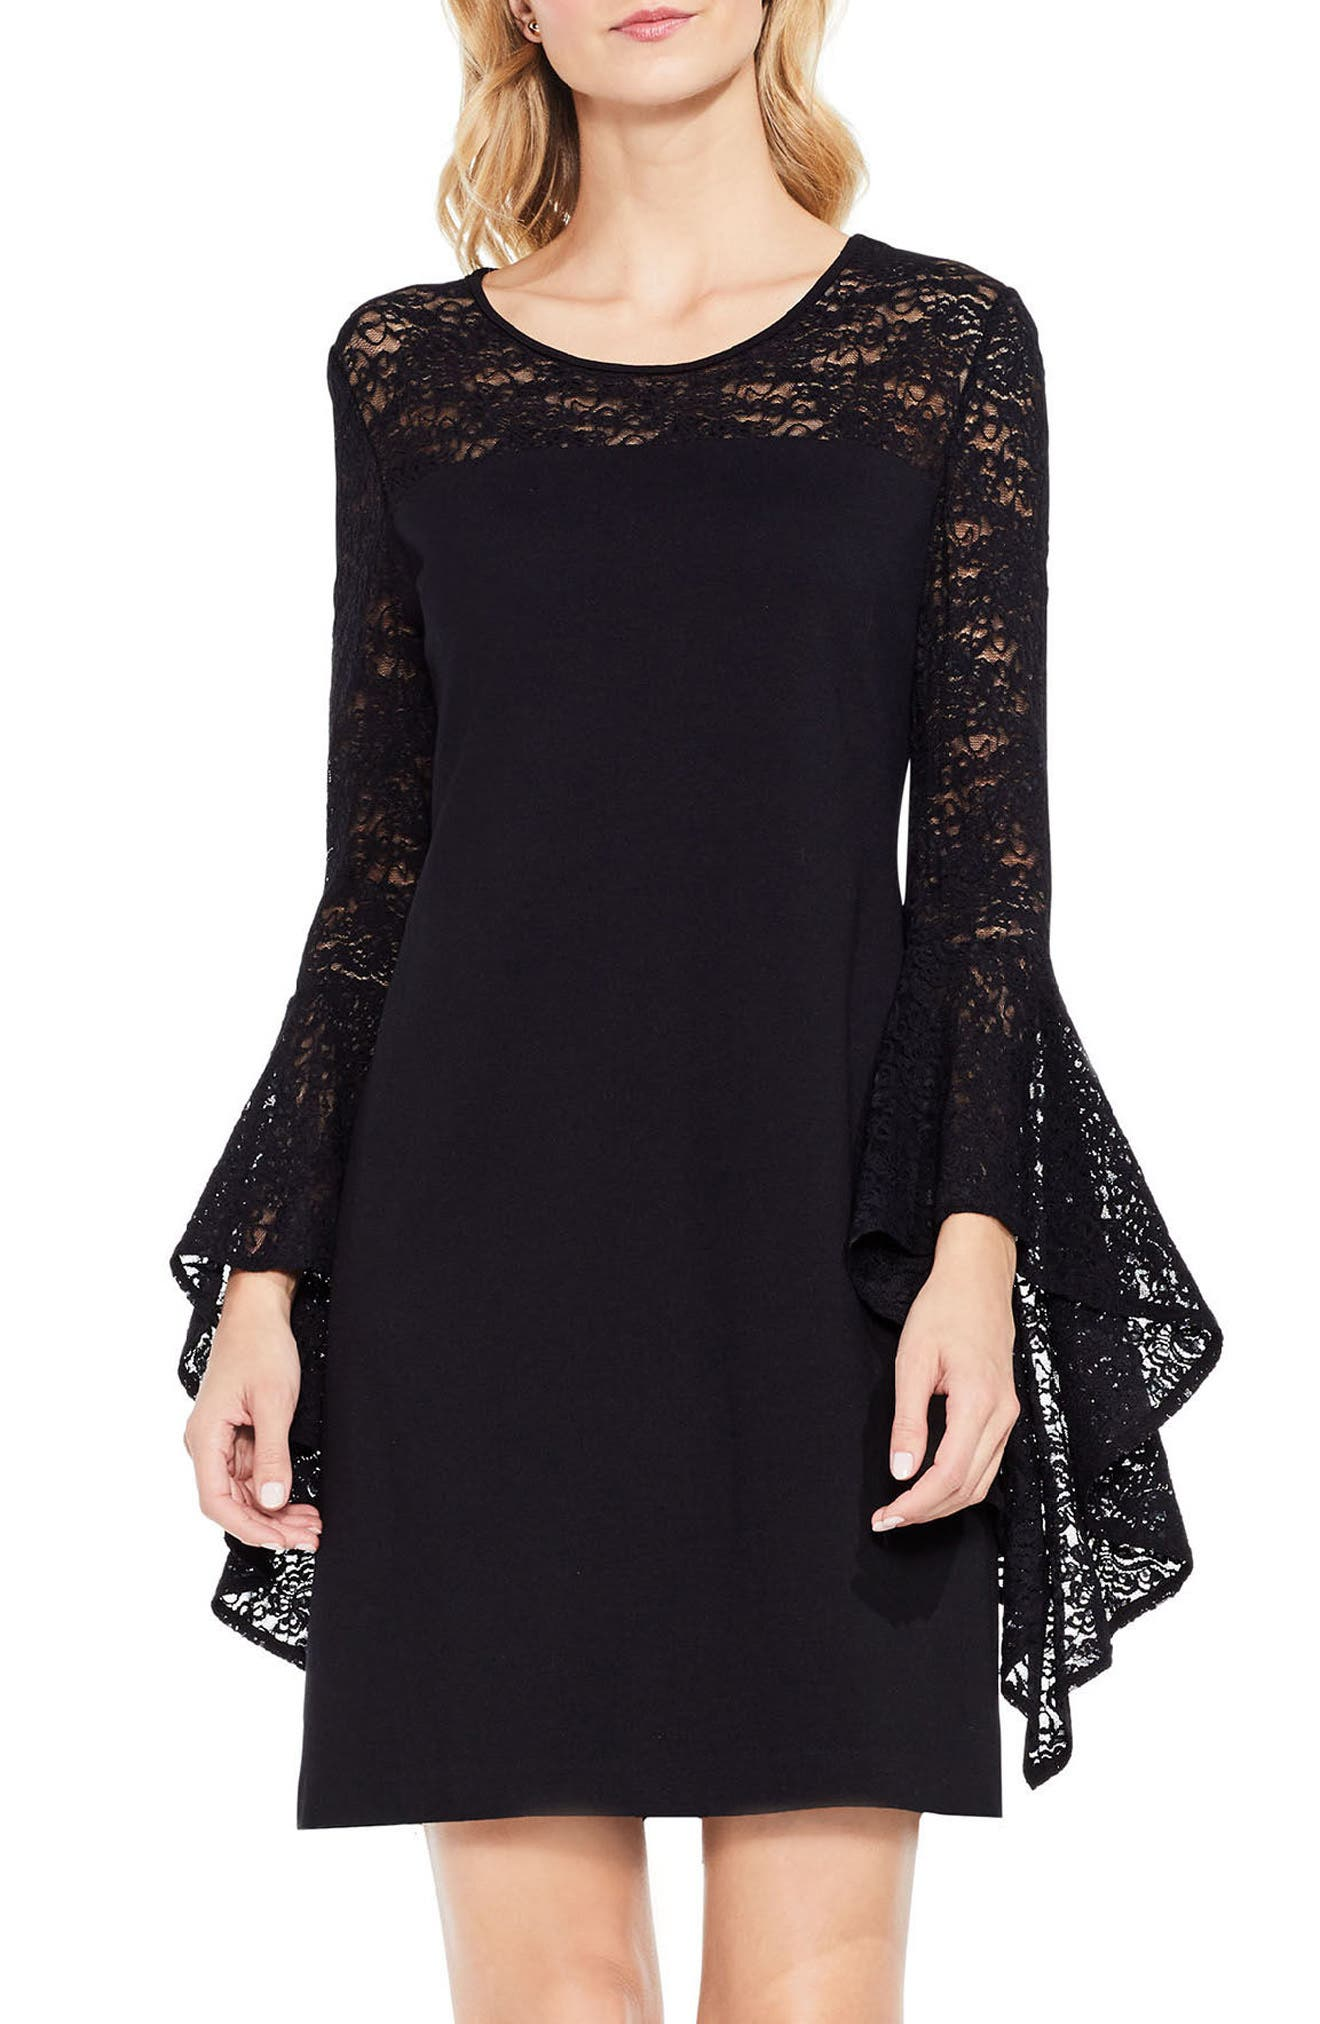 Alternate Image 1 Selected - Vince Camuto Handkerchief Lace Ponte Dress